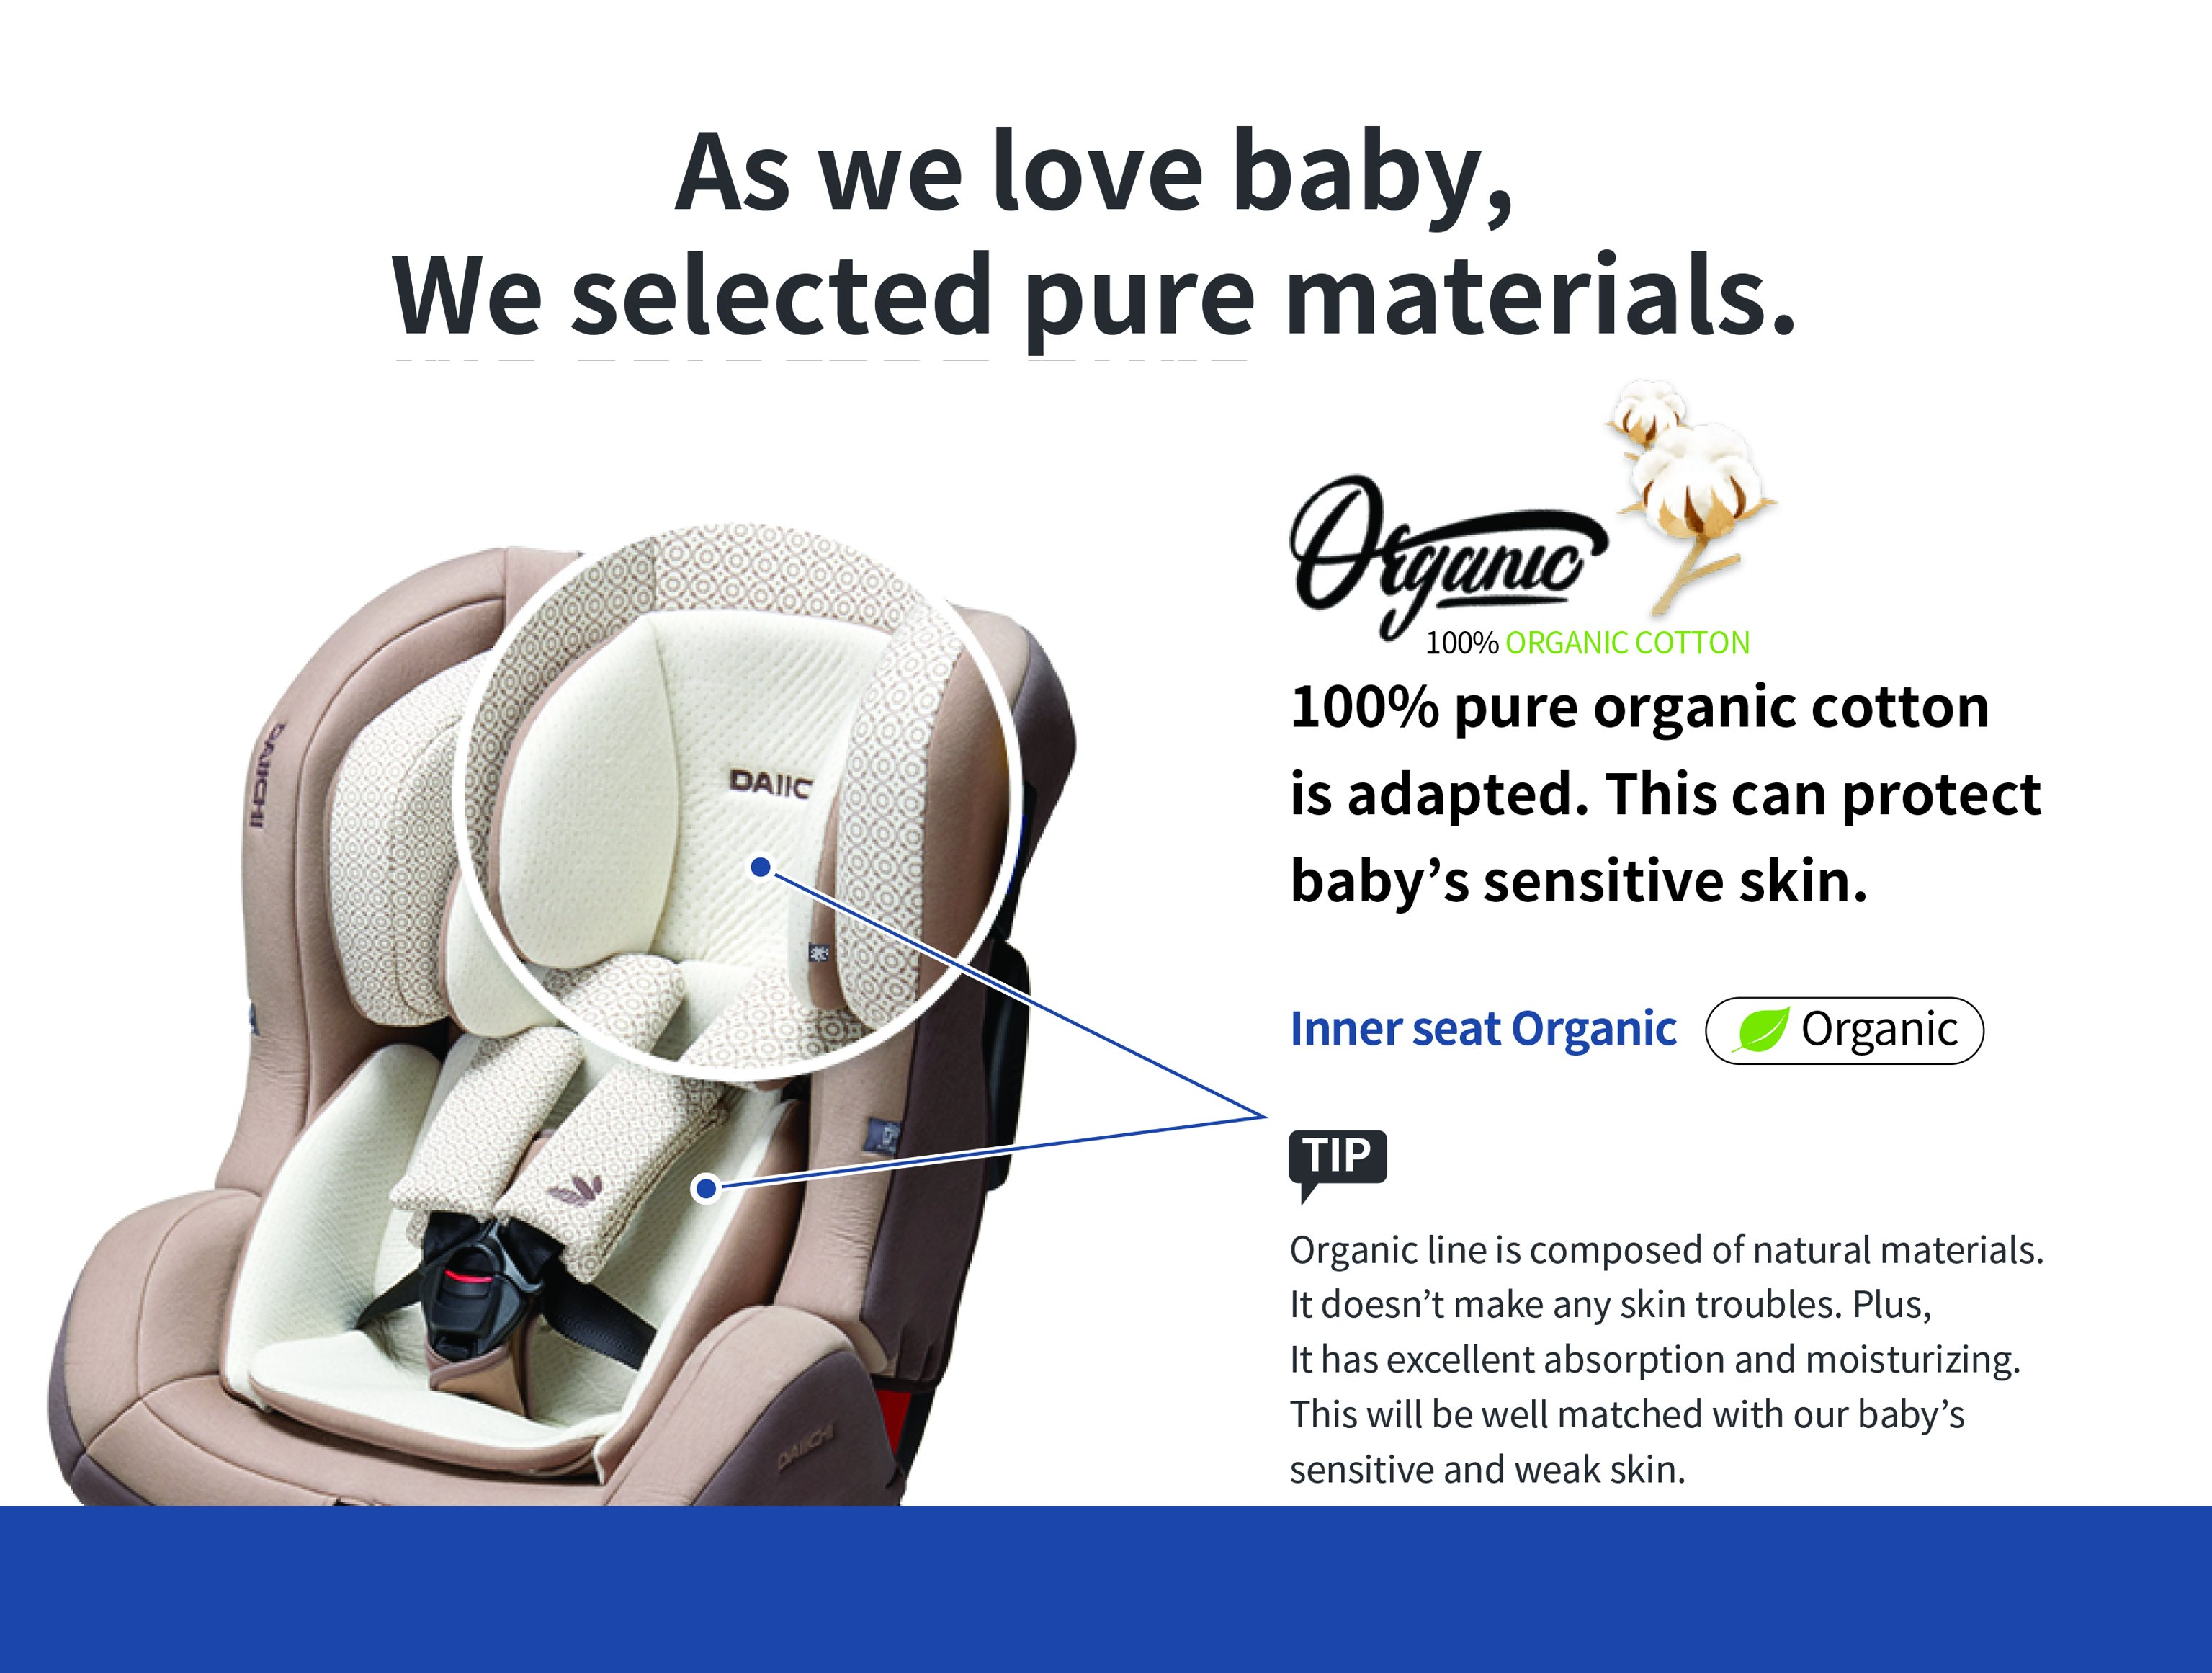 DAIICHI CAR SEAT FIRST7 PLUS ORGANIC GRAY Pure Materials